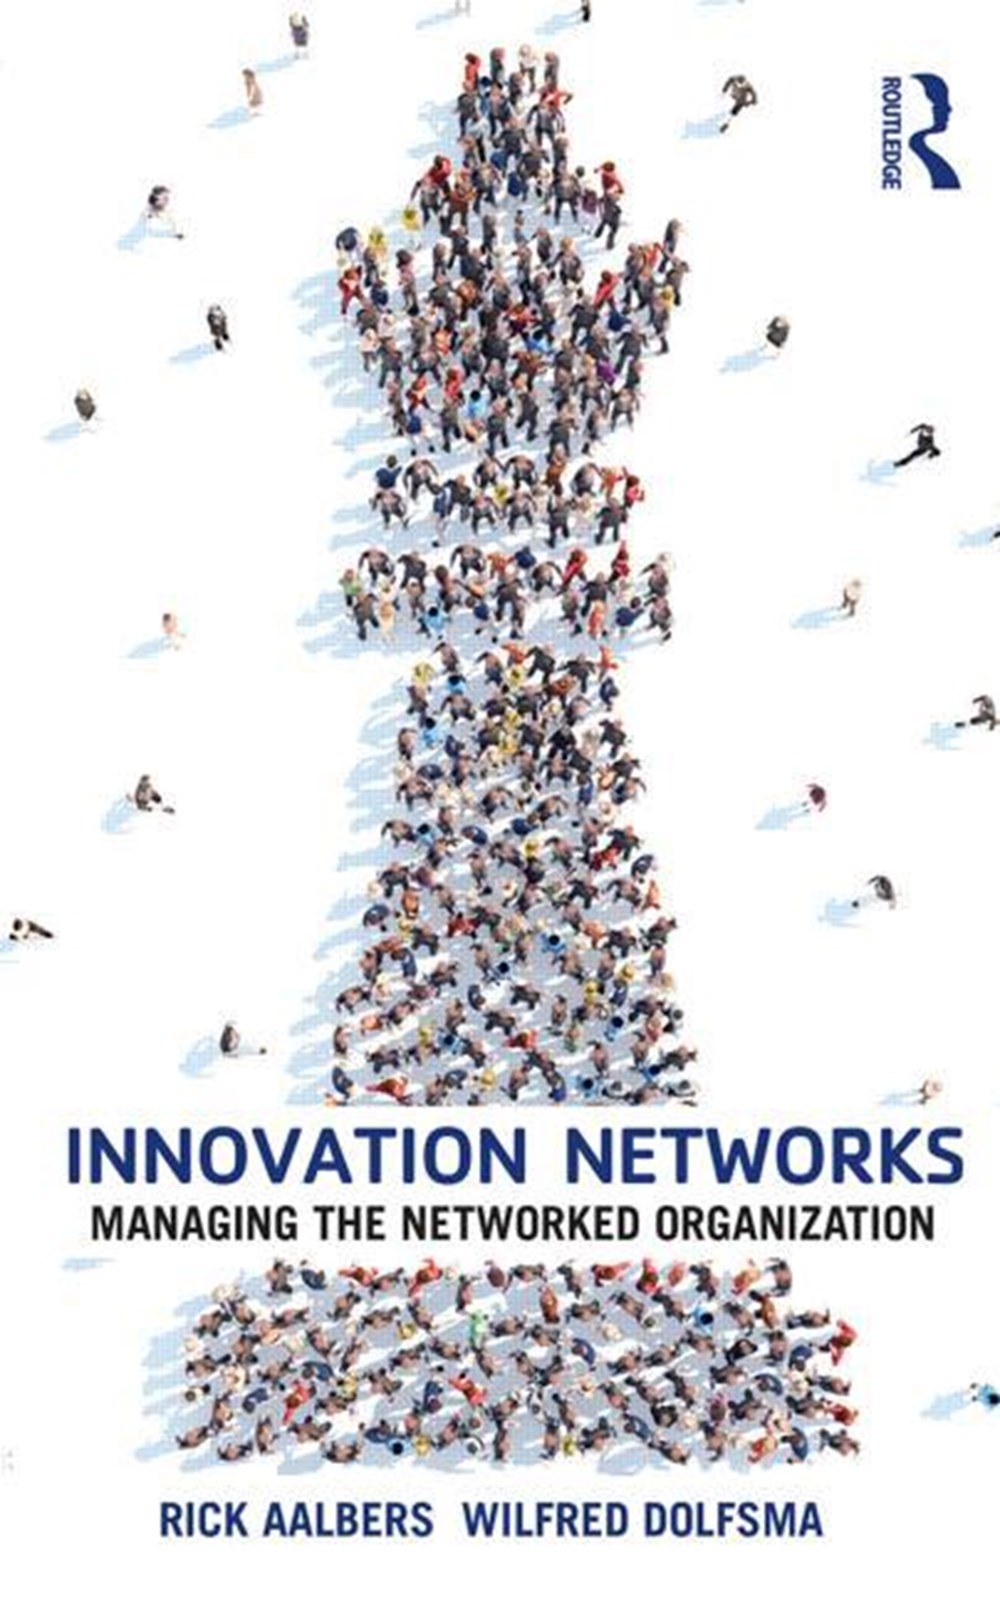 Innovation Networks Managing the networked organization